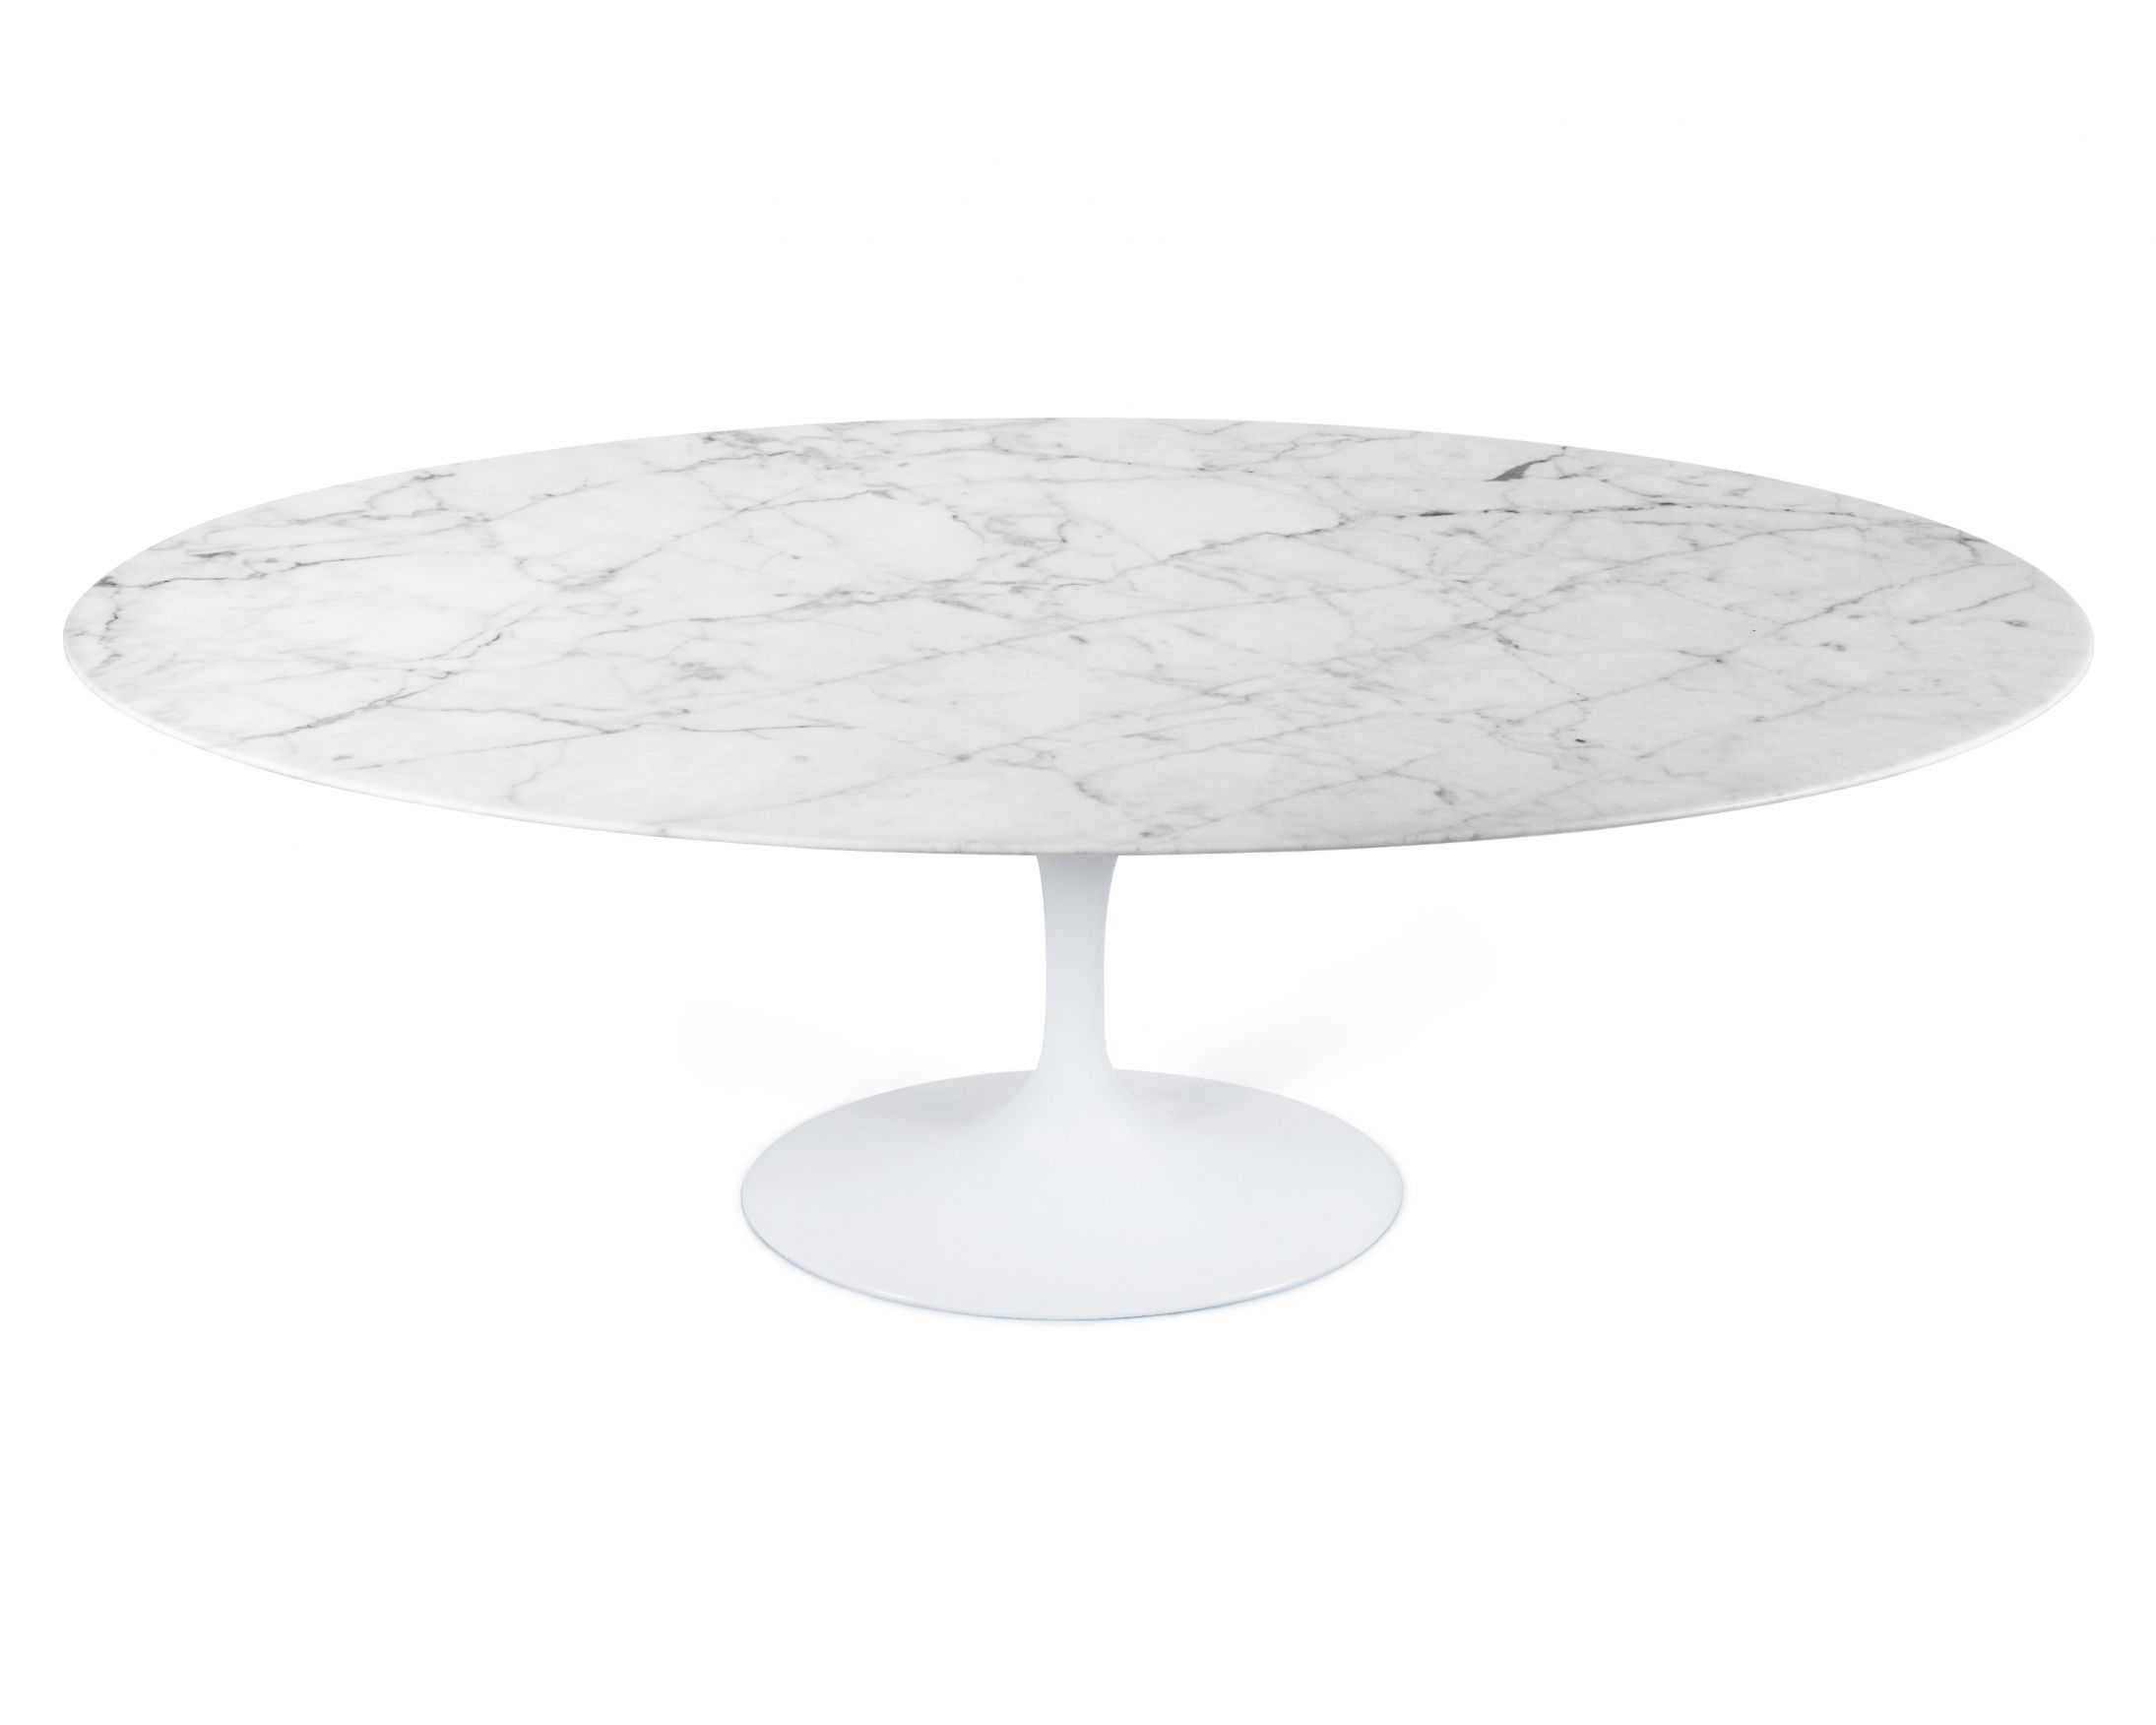 table with oval he leaf round savion p homelegance dining espresso roundoval